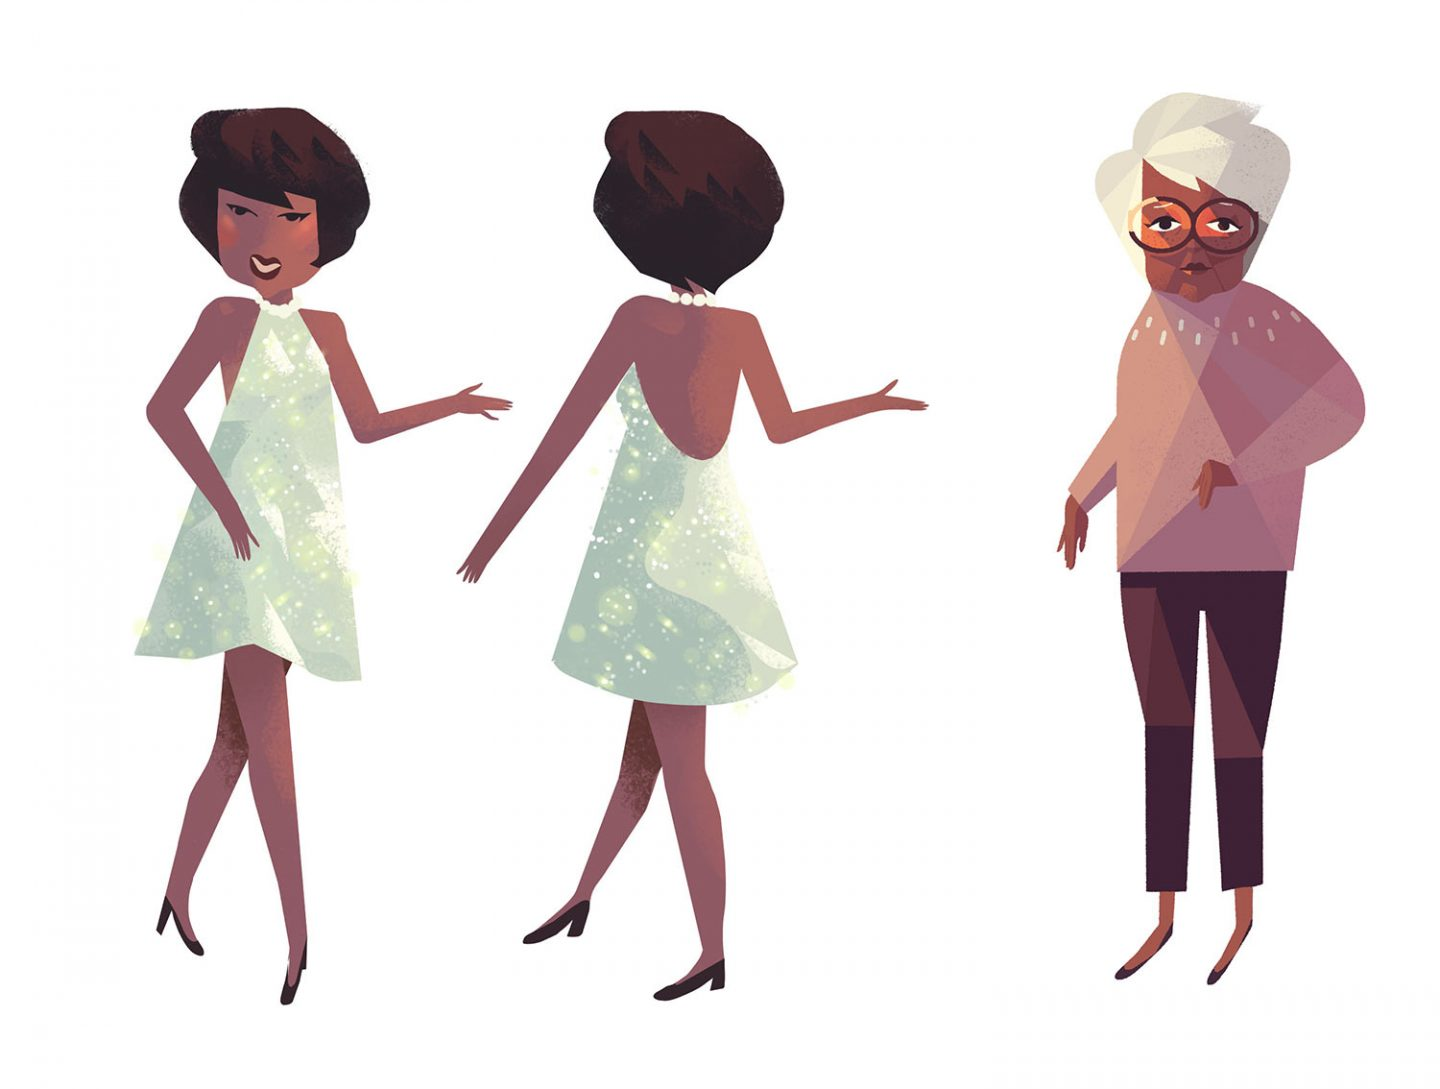 Motown-era June designs (l.) by Tiffany Ford. Older June design by Original Design by TIffany Ford, clean-up design by Jasmin Lai and Kevin Dart.